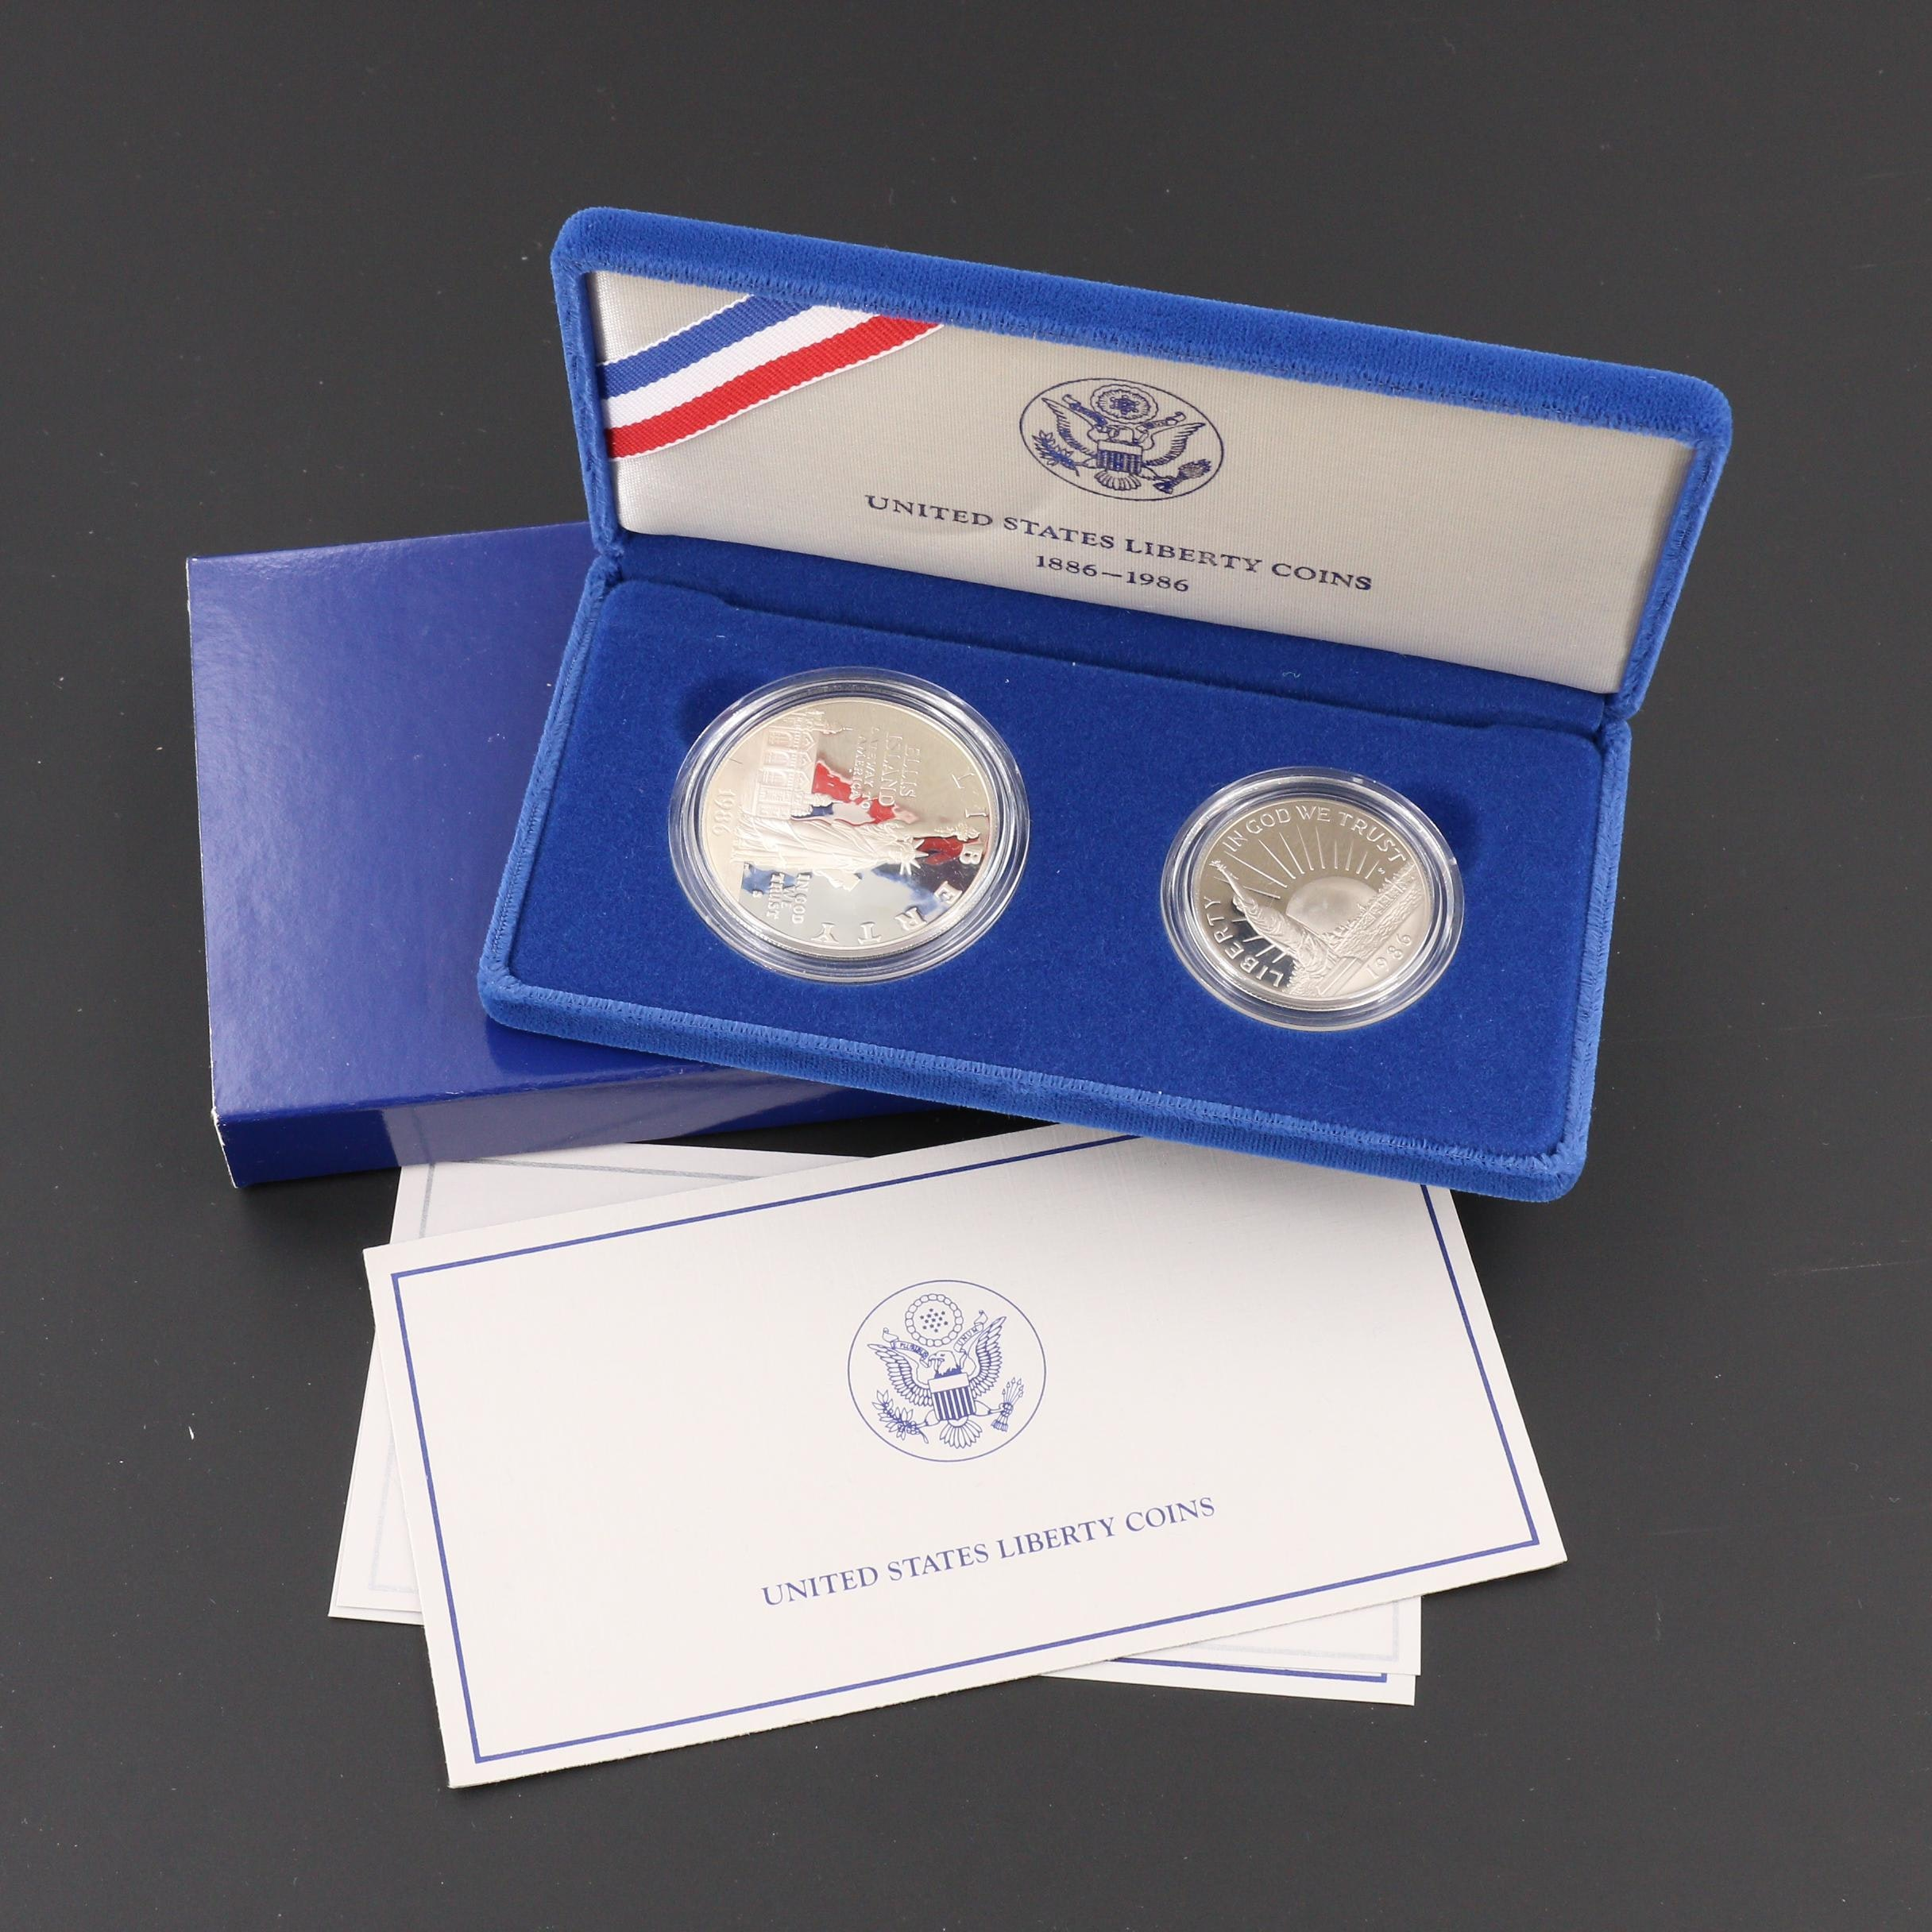 A 1986 Statue of Liberty Commemorative Coin Proof Set